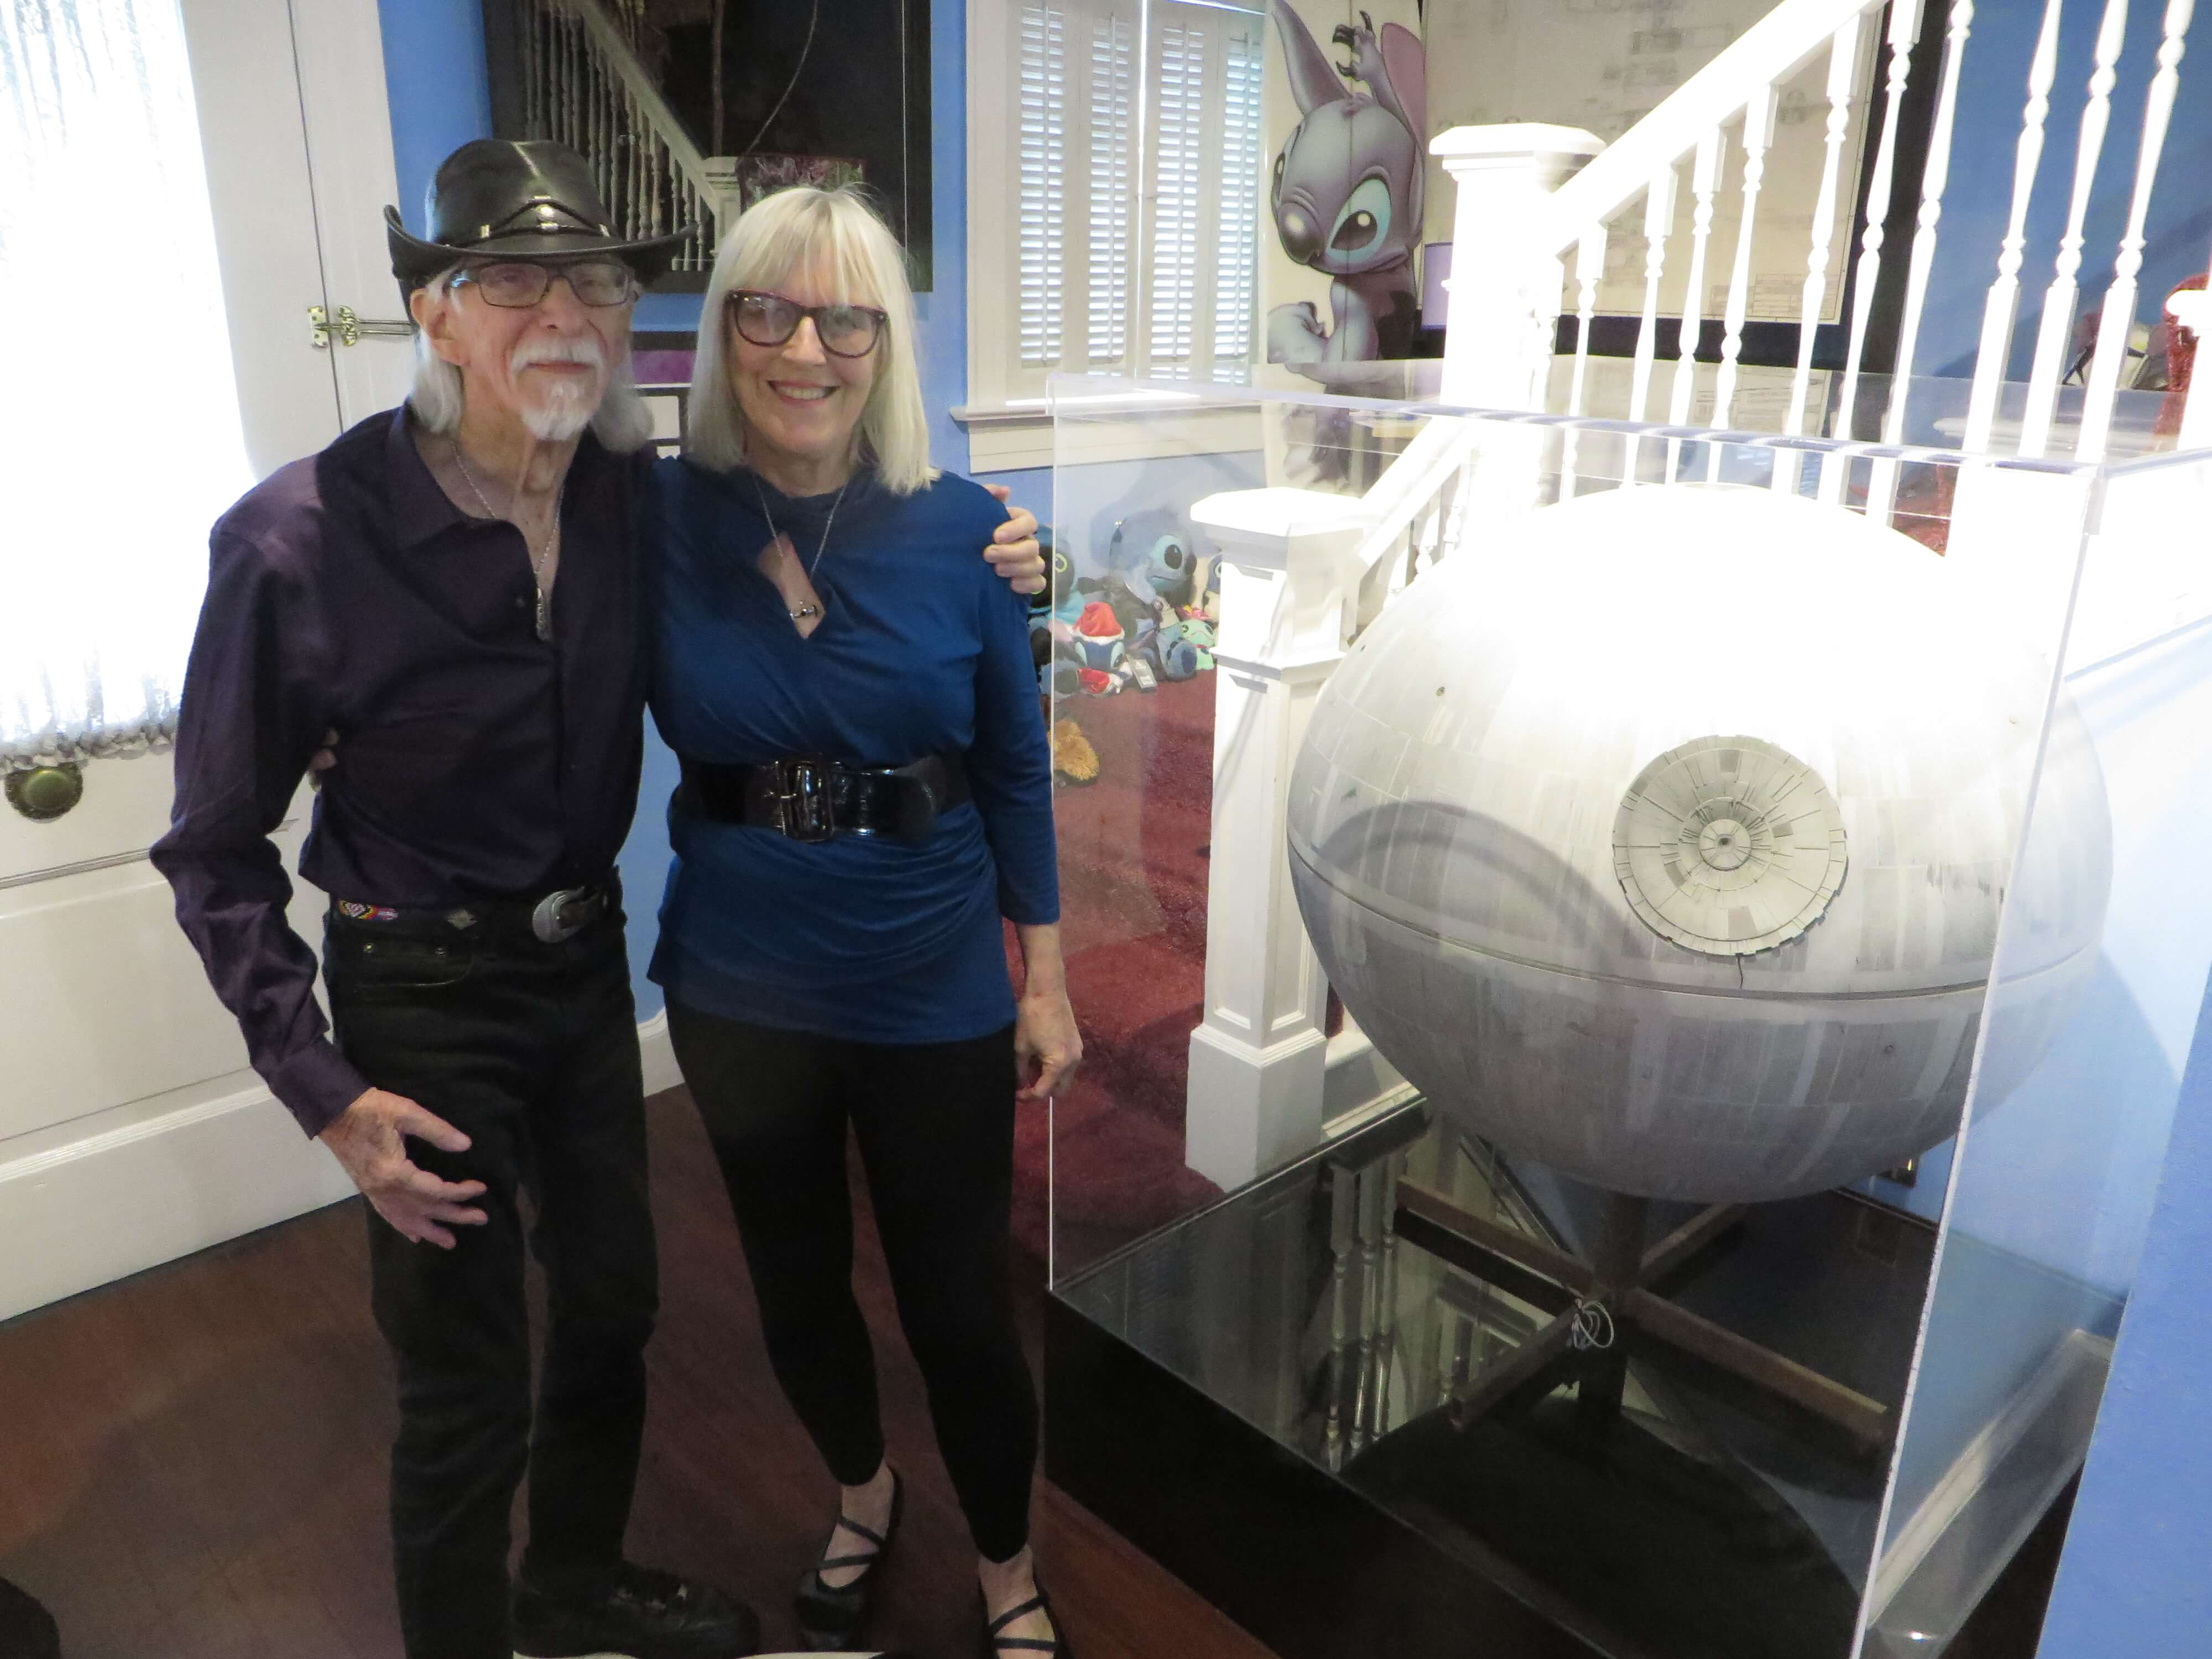 Colin and his partner Sierra next to one of the original Death Stars